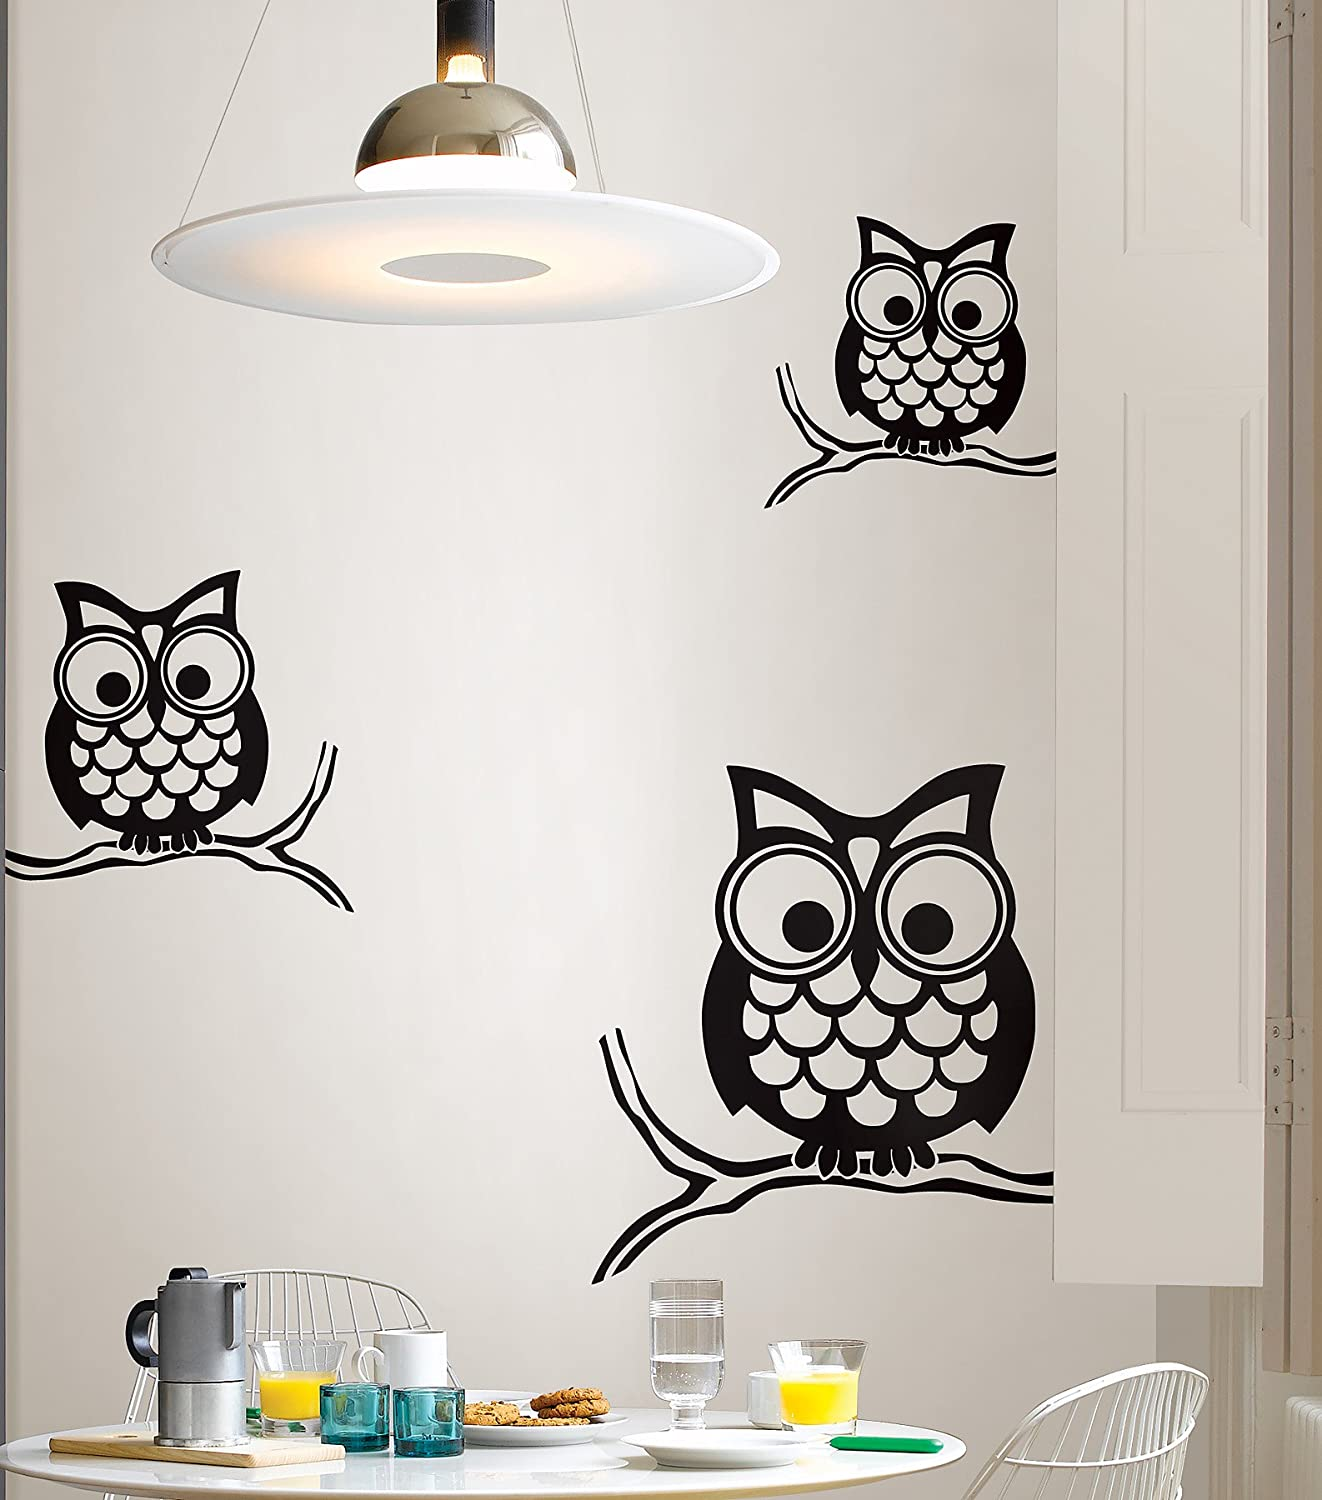 : small wall decals - www.pureclipart.com